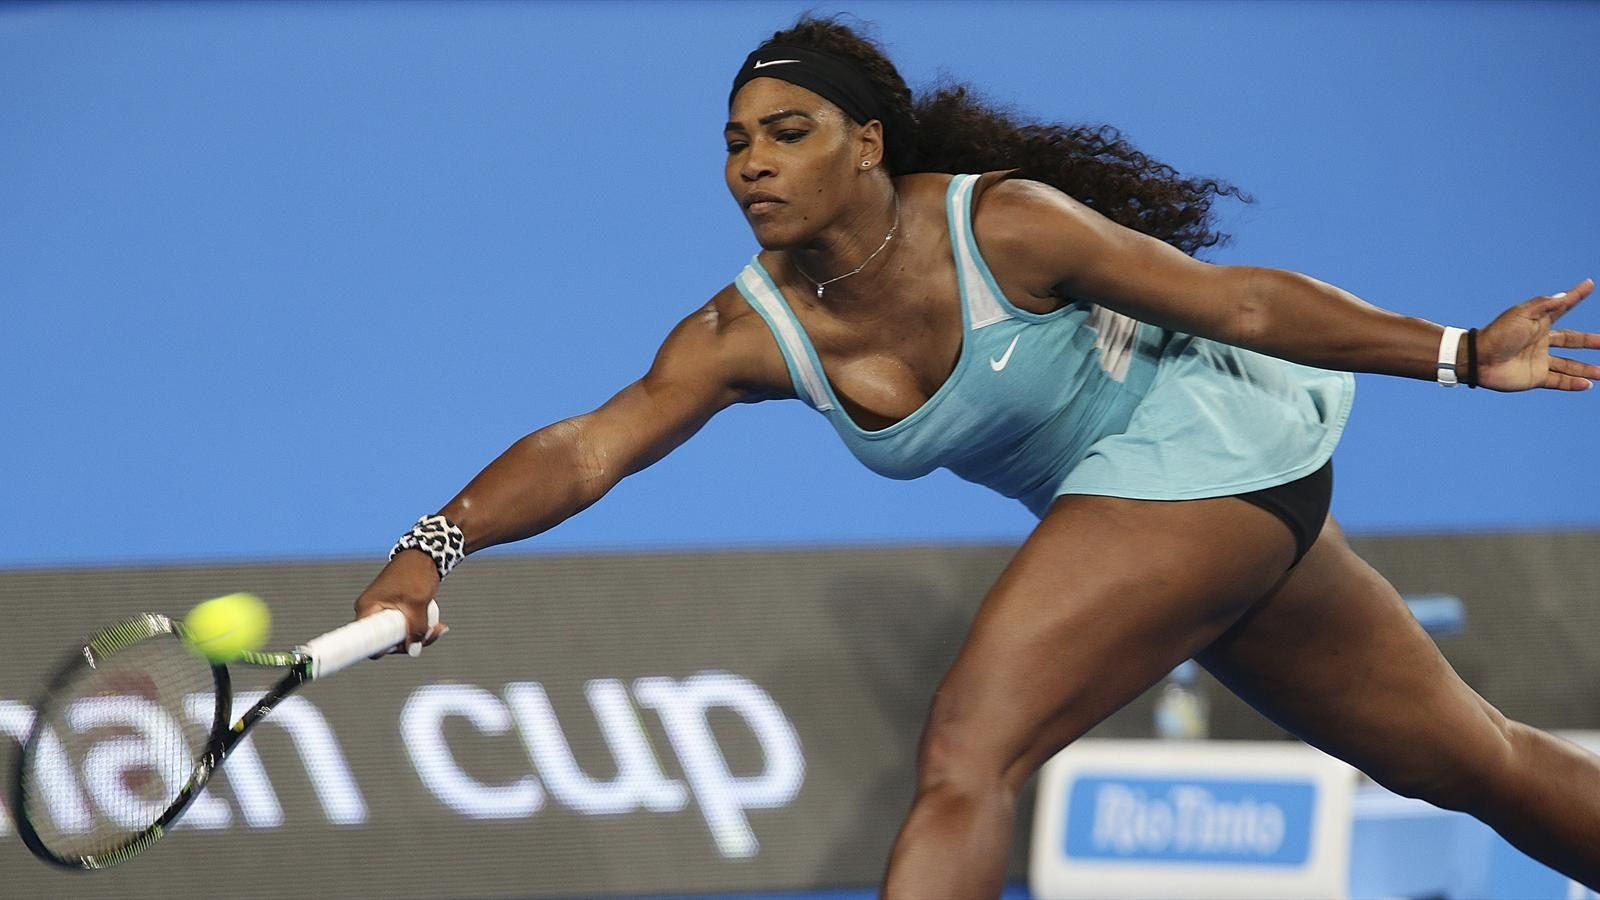 Serena Williams HD Images : Get Free top quality Serena Williams ...